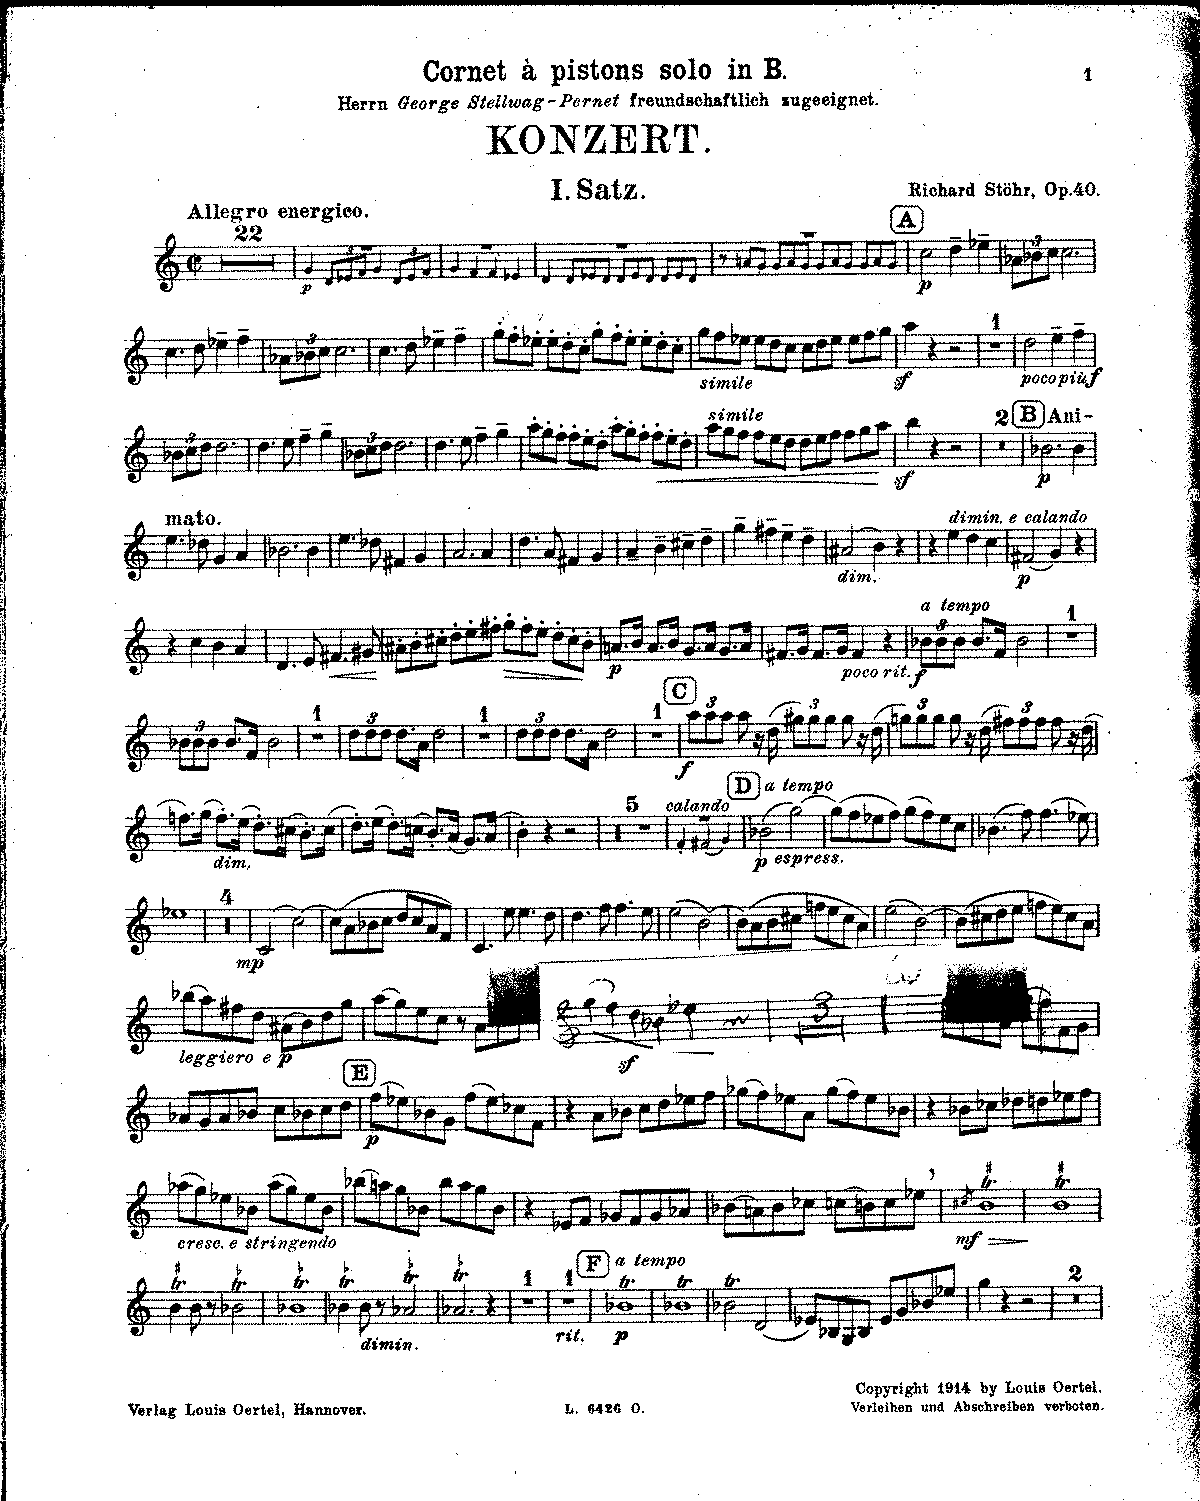 PMLP598647-Opus 40 Concerto for Trumpet and Piano.pdf